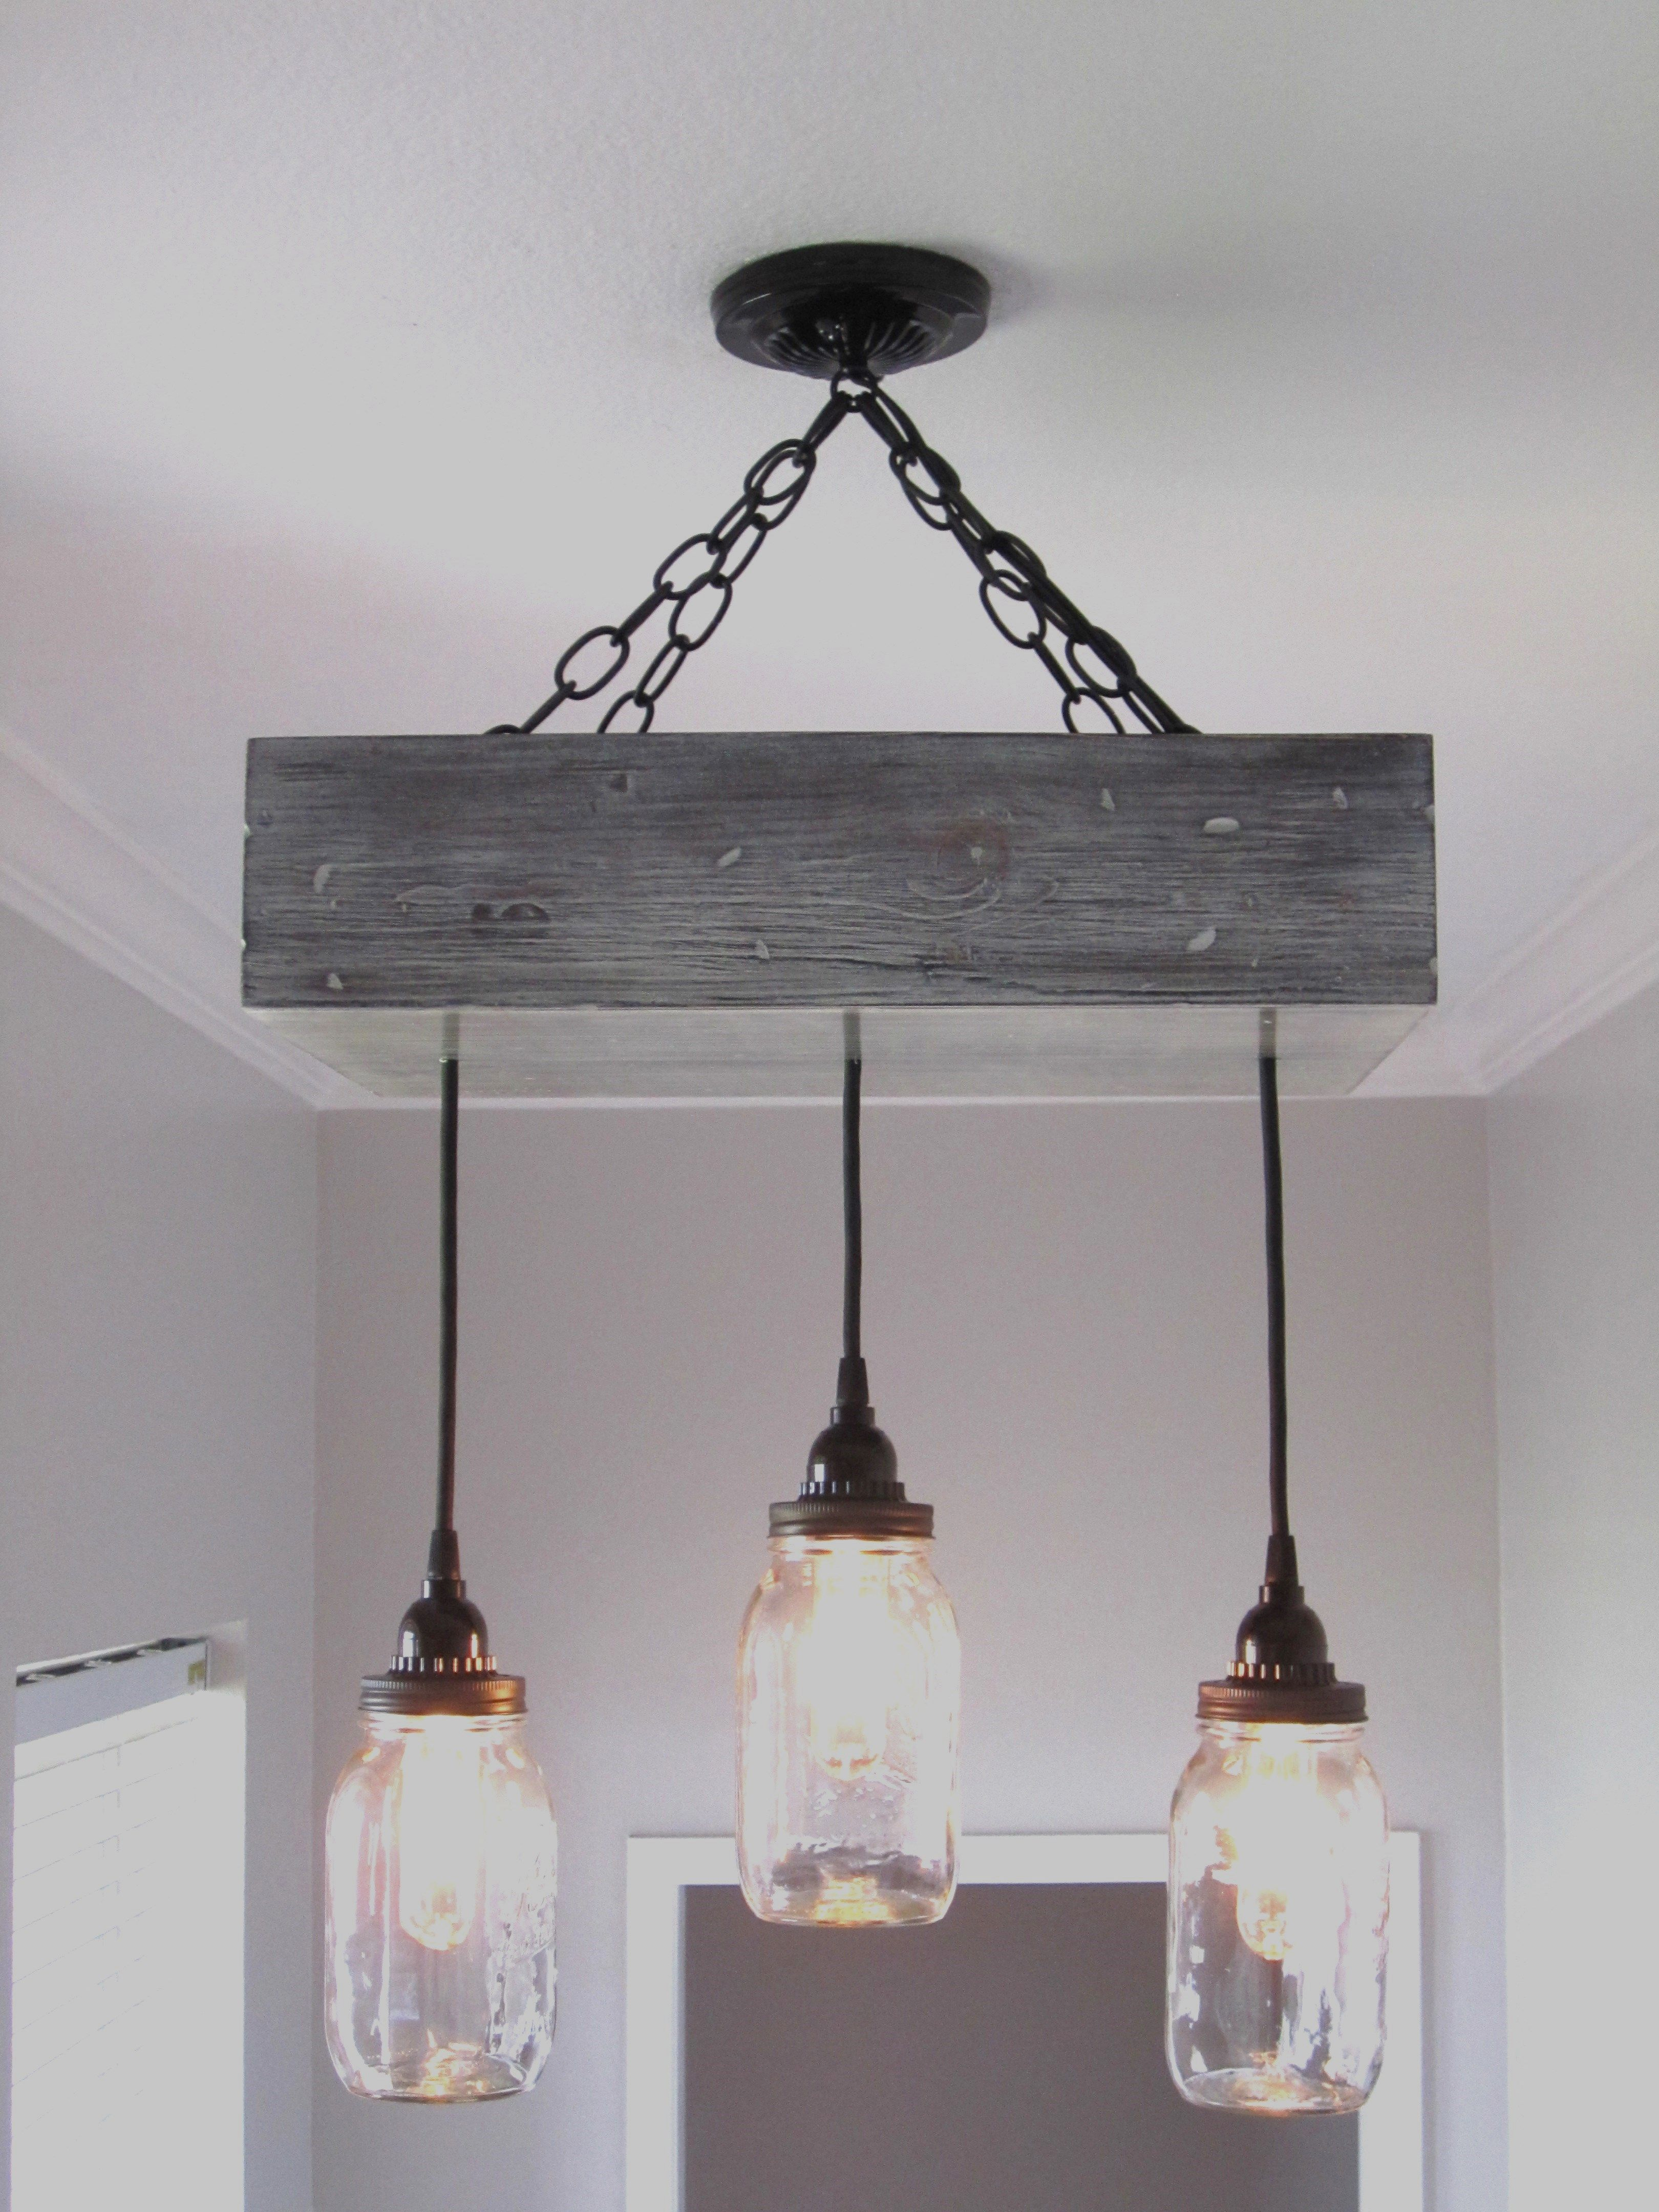 Add a rustic chandelier to your decor outofthewdworkdesignsy add a rustic chandelier to your decor outofthewdworkdesignsy aloadofball Gallery